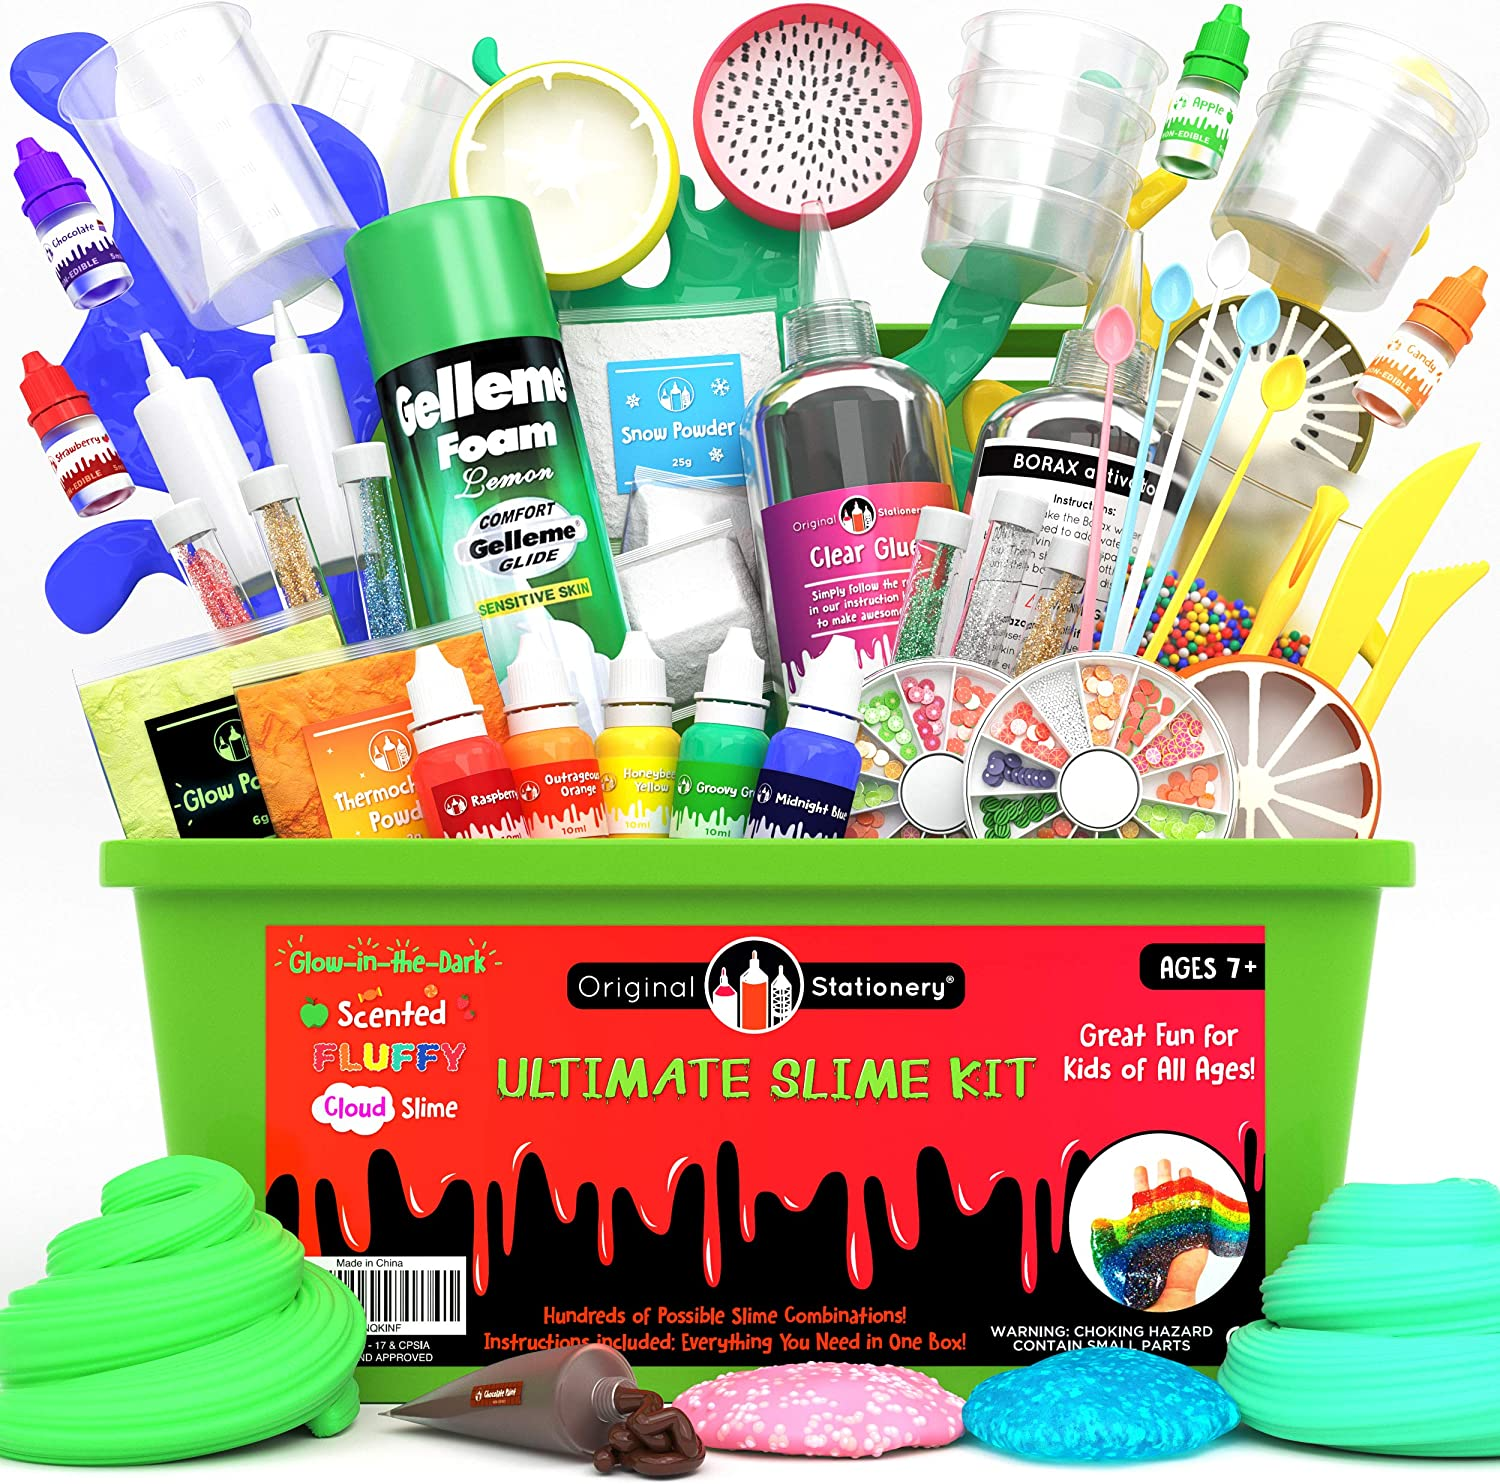 Original Stationery Ultimate Slime Kit: DIY Slime Making Kit with Slime Add Ins Stuff for Unicorn, Glitter, Cloud, Butter, Floam, More - Deluxe Slime Kits Gift for Girls and Boys (Green, 53pcs)